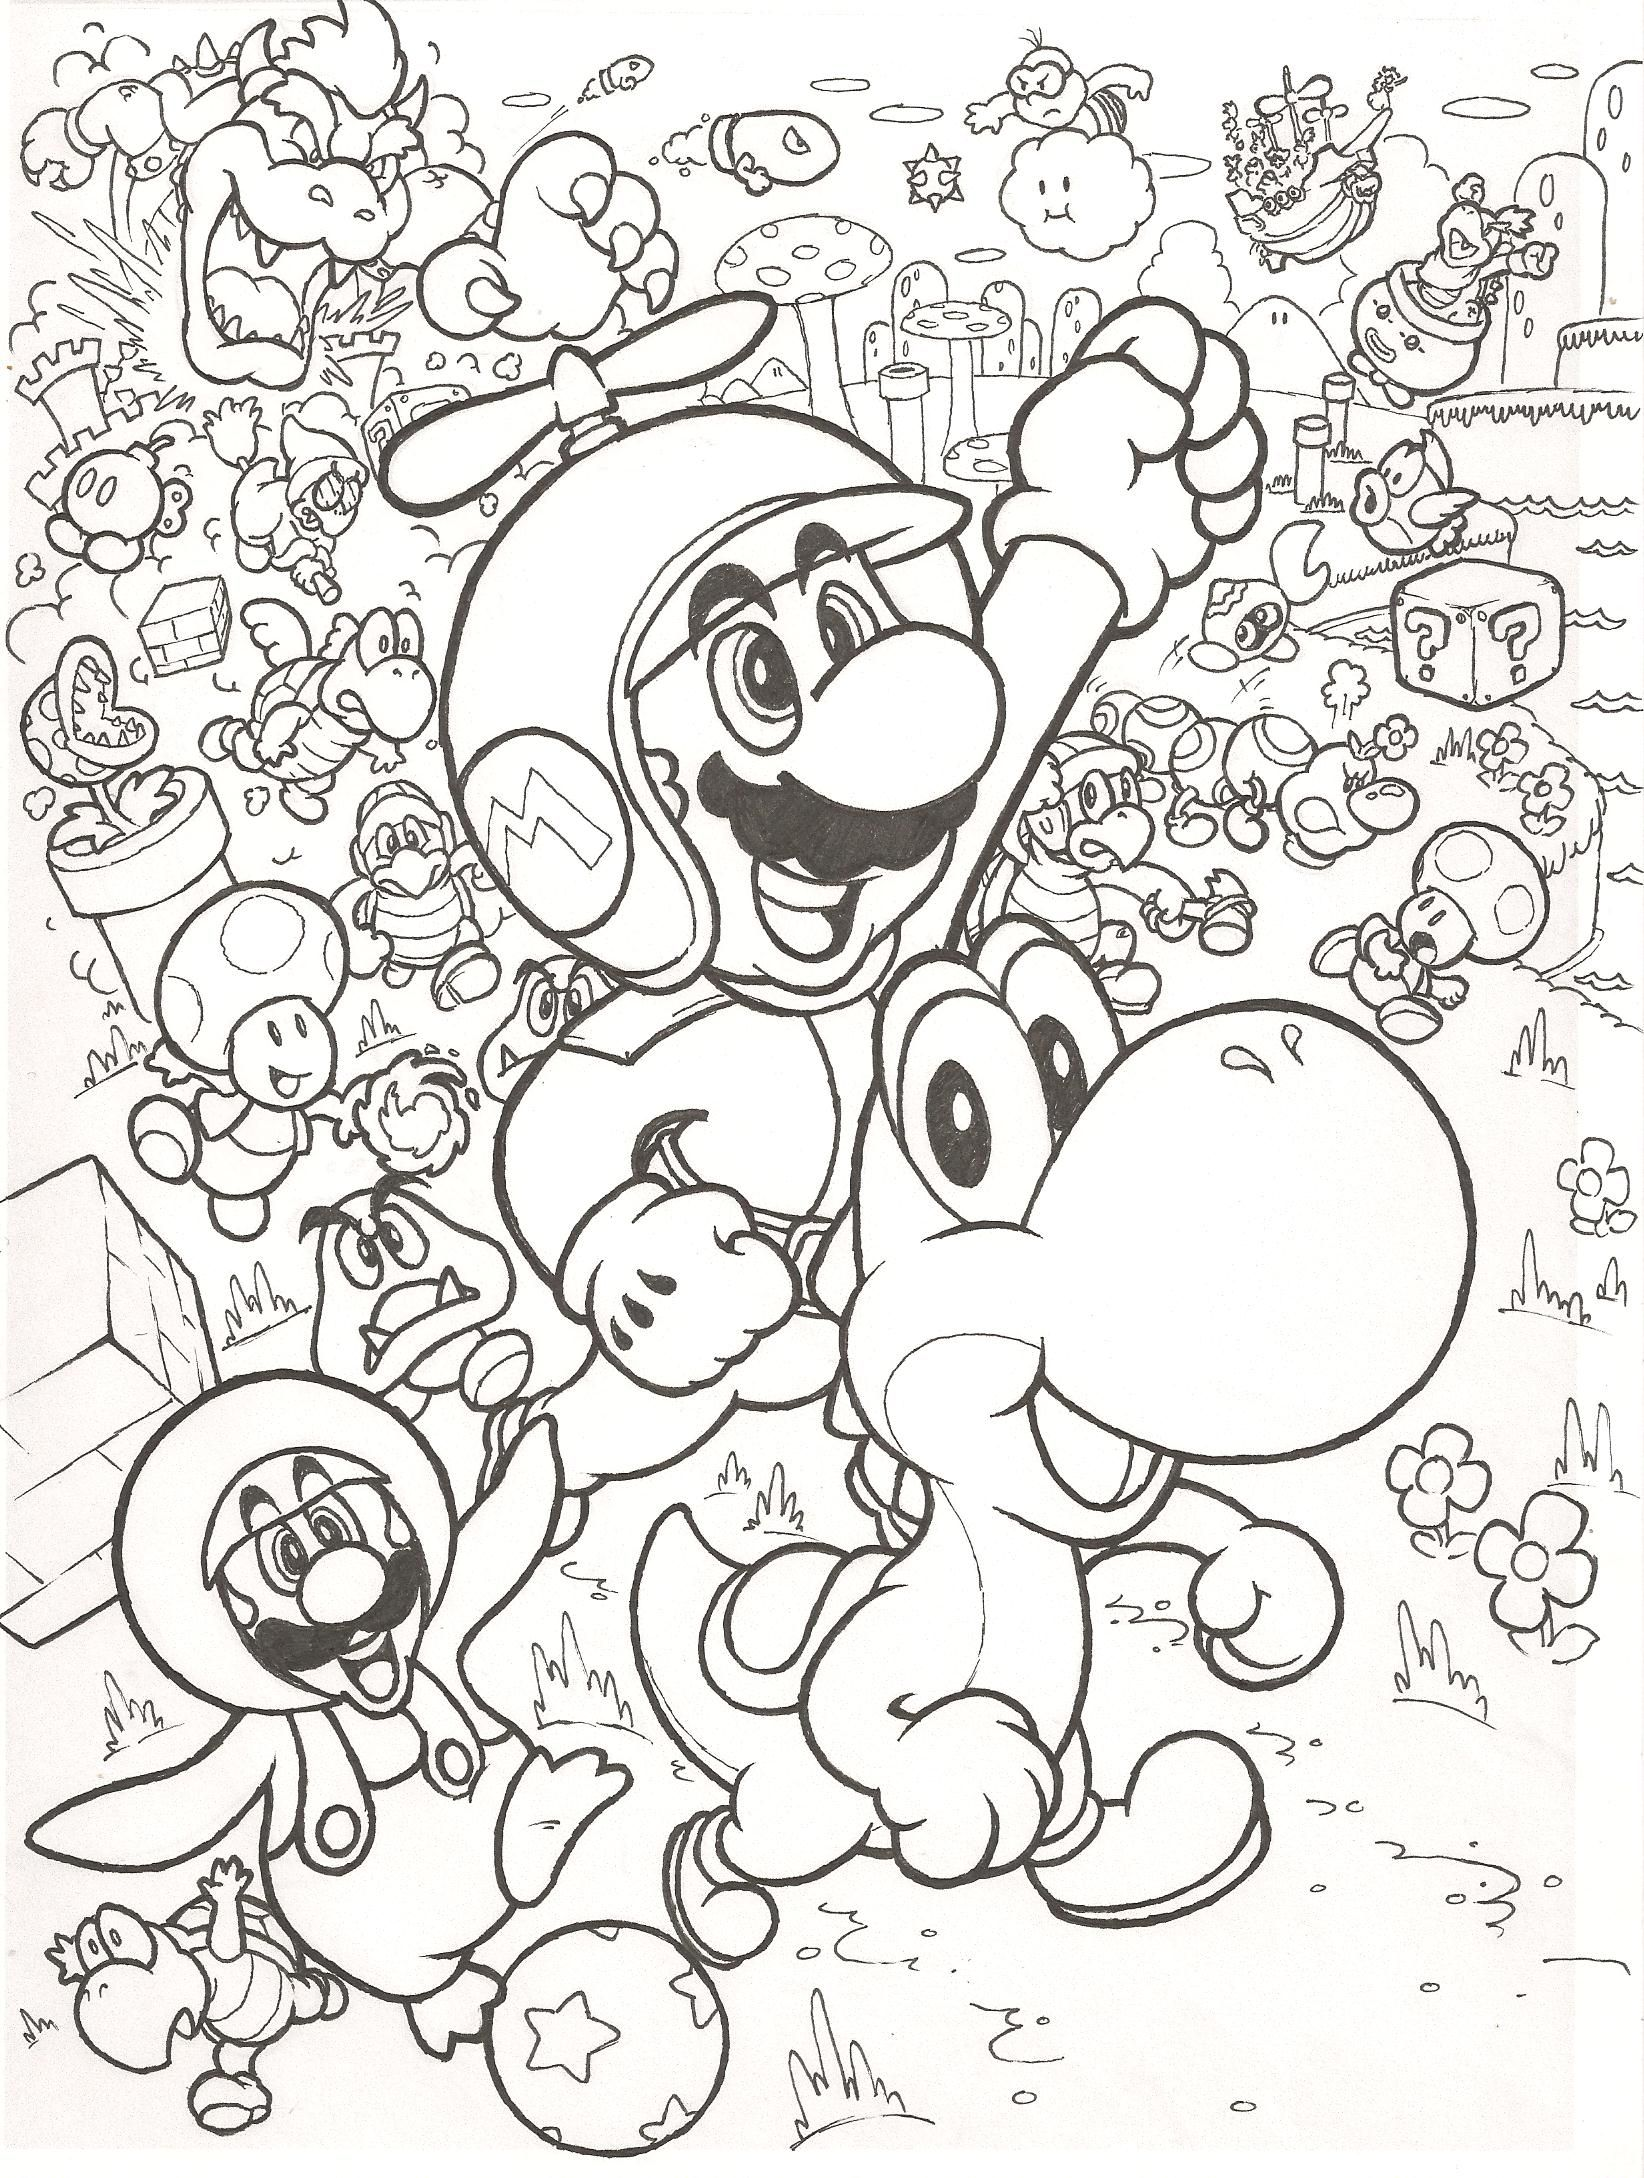 Coloring pages for kids mario bros - Super Mario Bros Coloring Pages Free Large Images